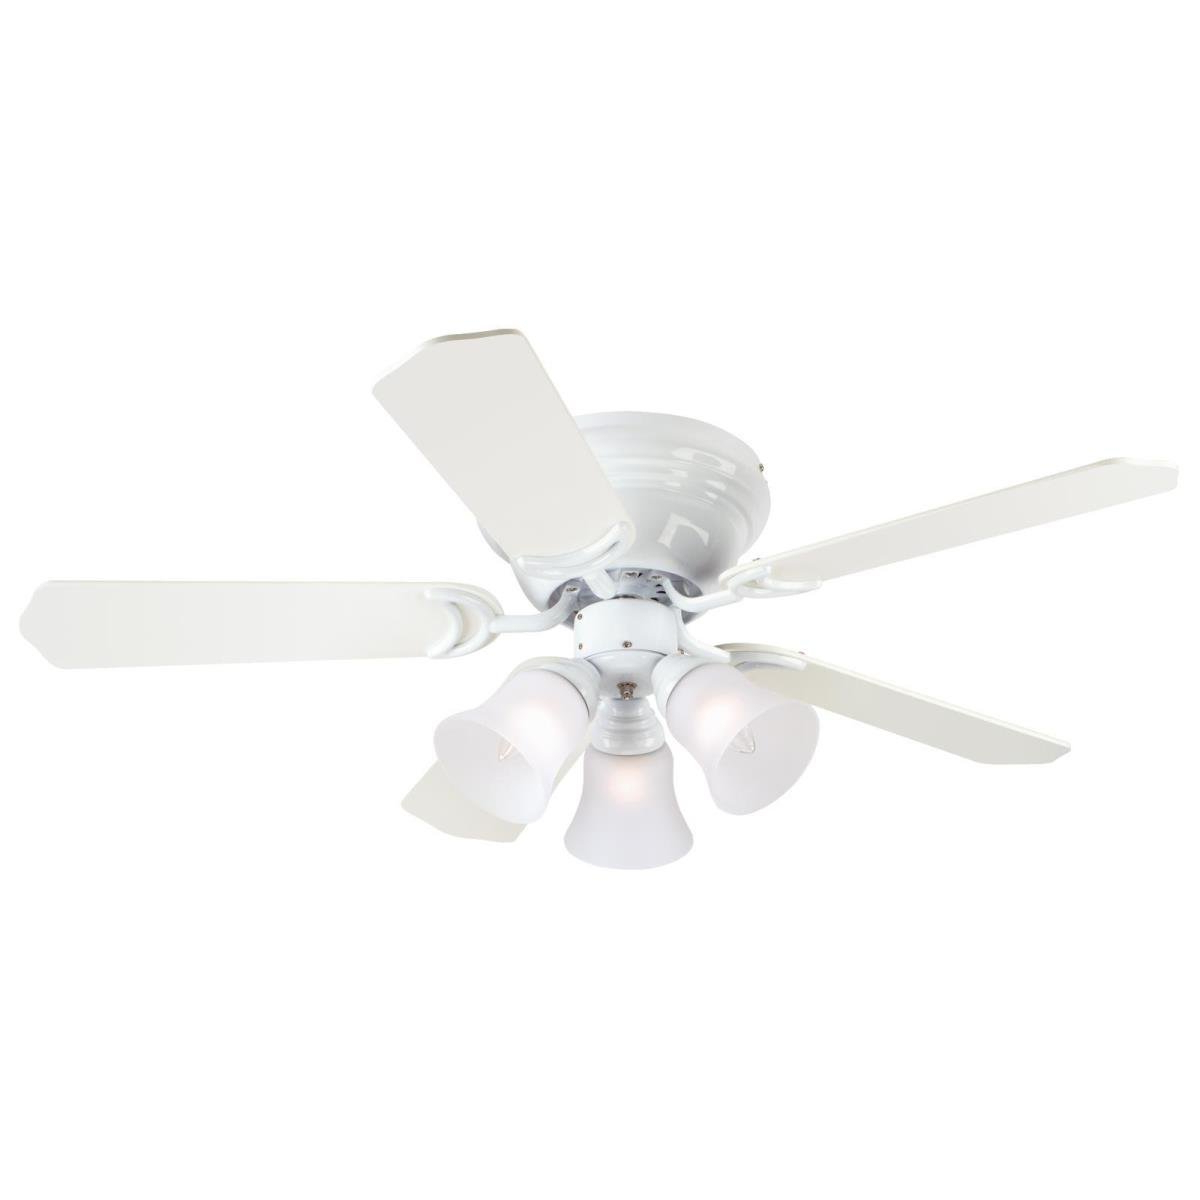 """42"""" Rosenblatt 5 Blade Ceiling Fan With Regard To Widely Used Cerro 5 Blade Ceiling Fans (View 2 of 20)"""